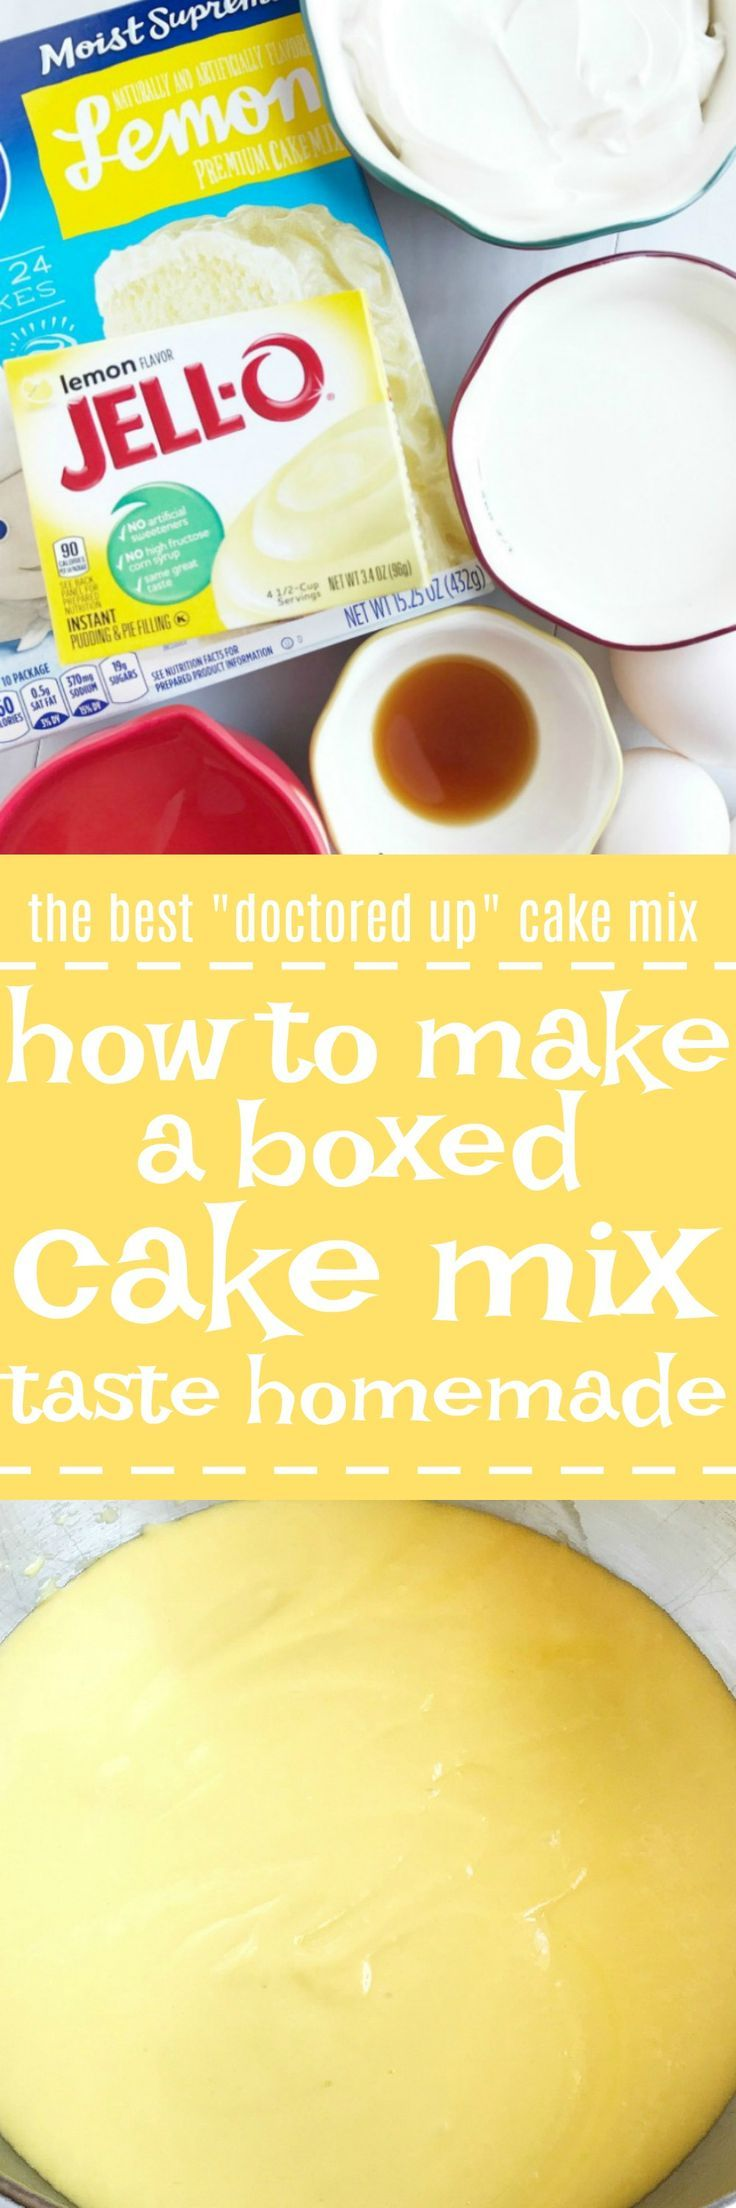 """his is the best way to make a boxed cake mix taste homemade! Use a convenient & inexpensive boxed cake mix along with a few staple pantry ingredients to """"doctor up"""" the cake mix. The result will be a perfectly moist, fluffy, rich cake that tastes like it"""